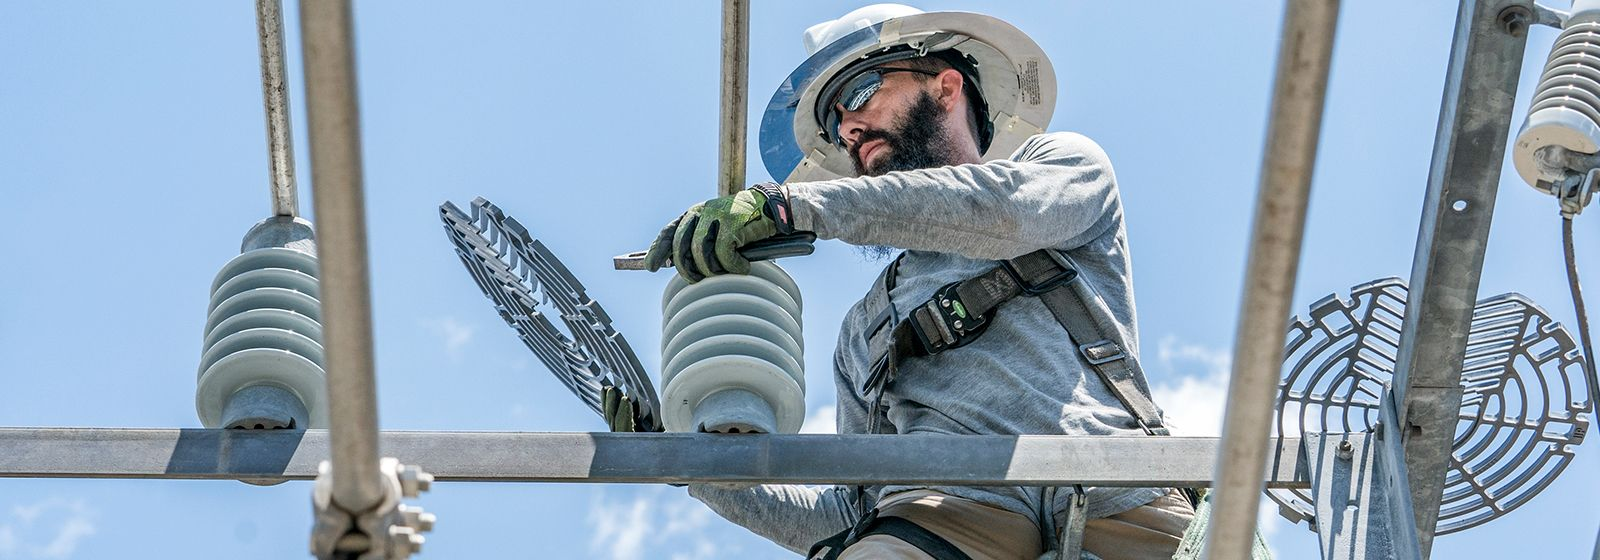 Can energy companies keep critters safe and customers happy?